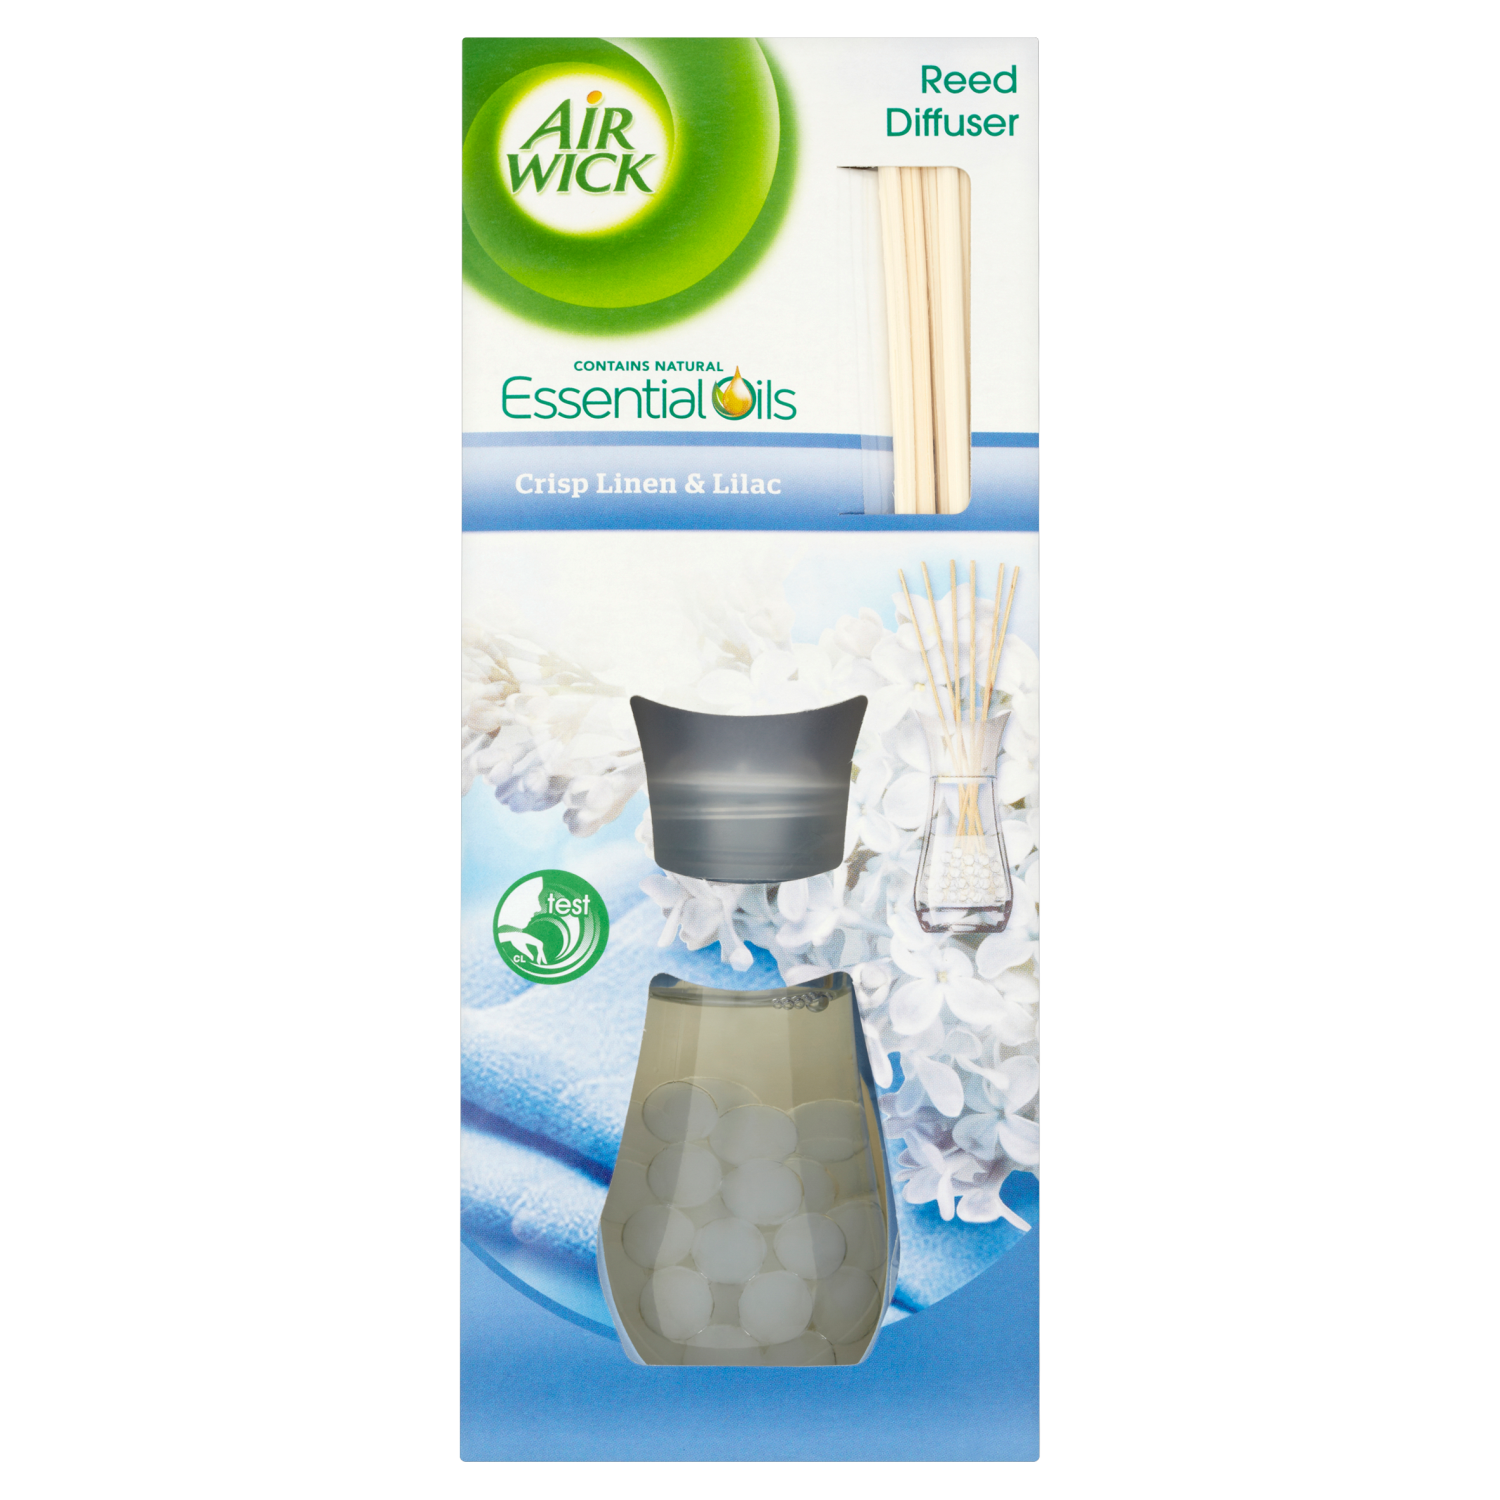 Air Wick Reed Diffusers Air Wick 174 Uk